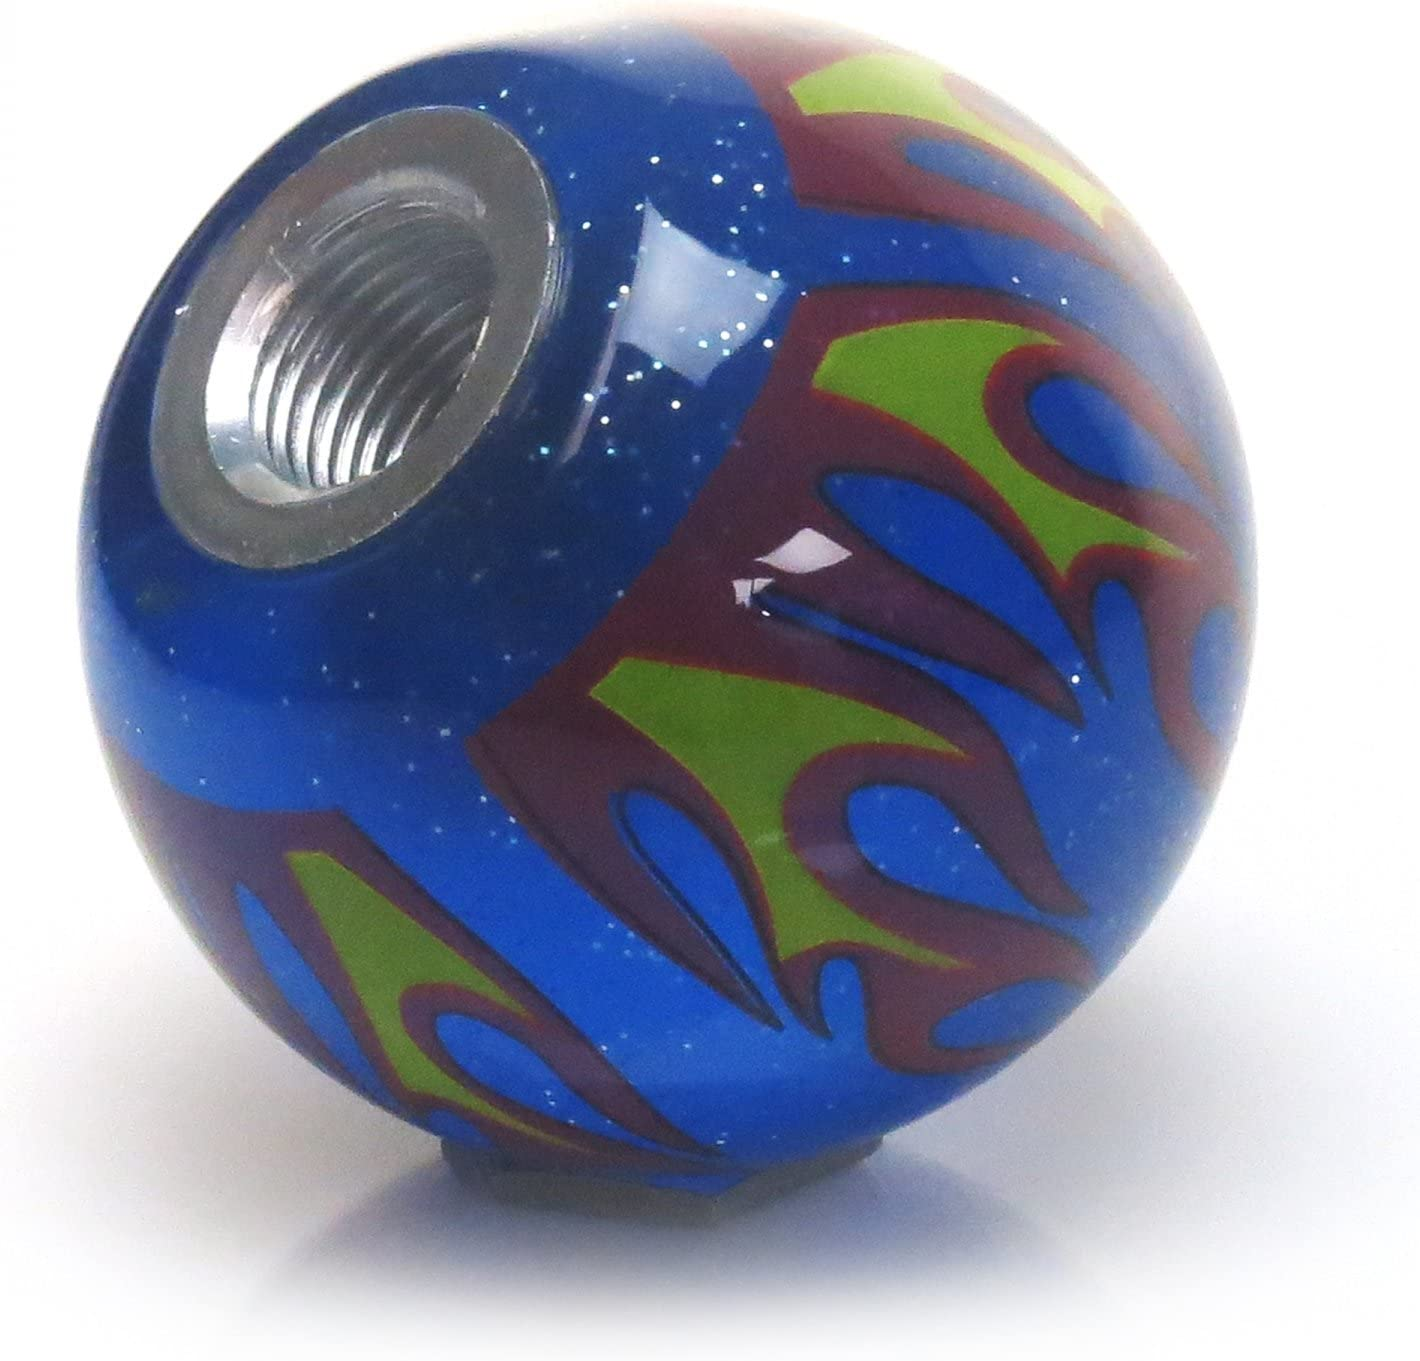 American Shifter 244482 Blue Flame Metal Flake Shift Knob with M16 x 1.5 Insert Green Dotted Directional Arrow Up